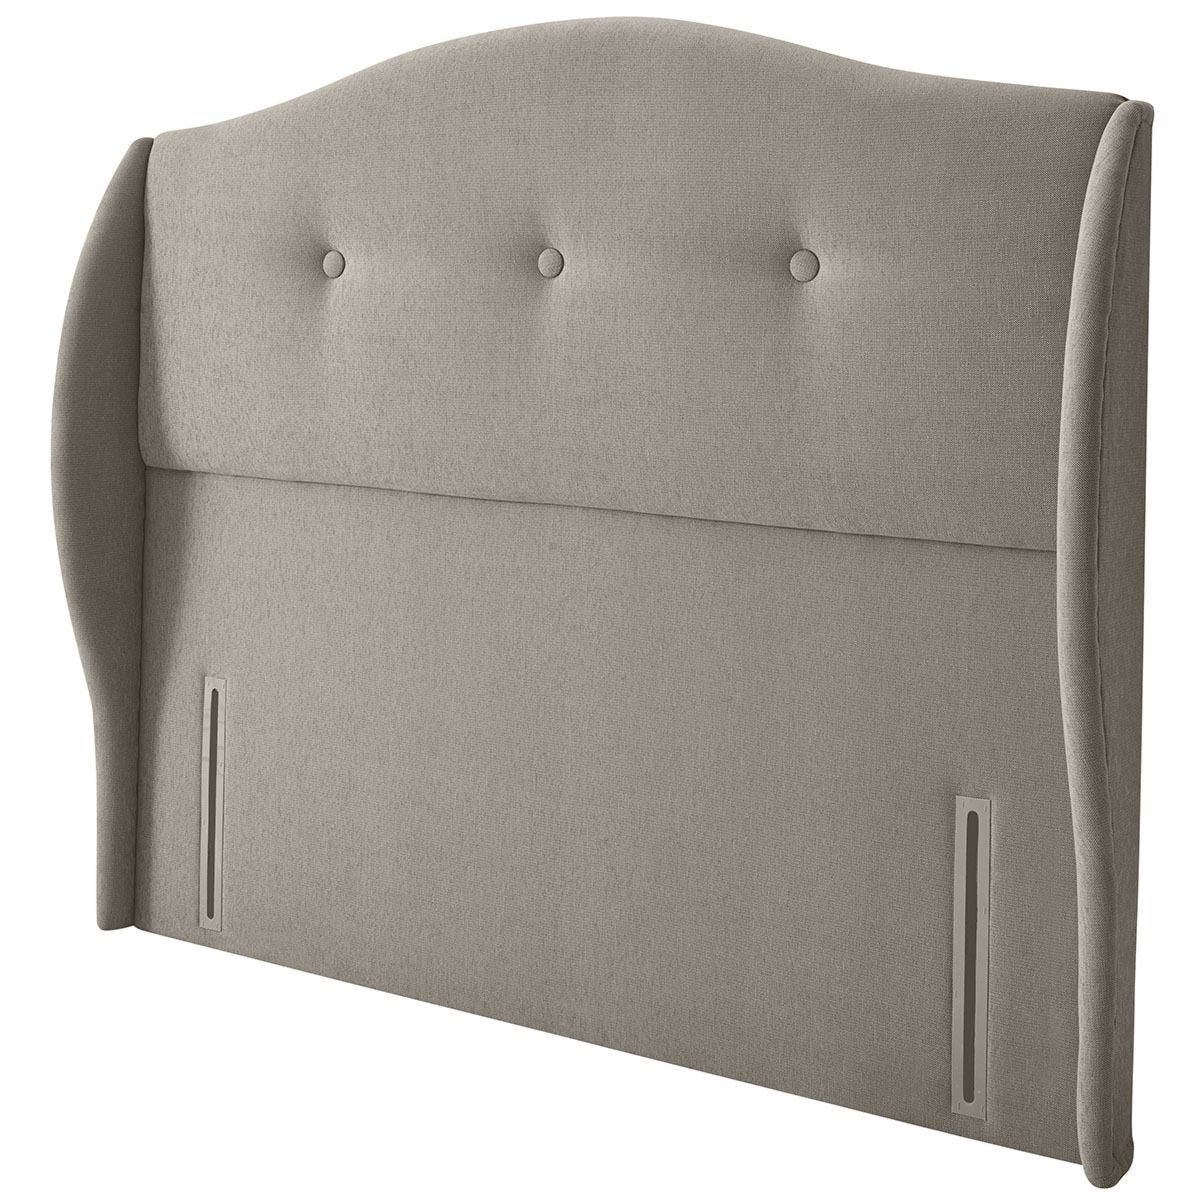 Silentnight Camden Sand Headboard - Super King